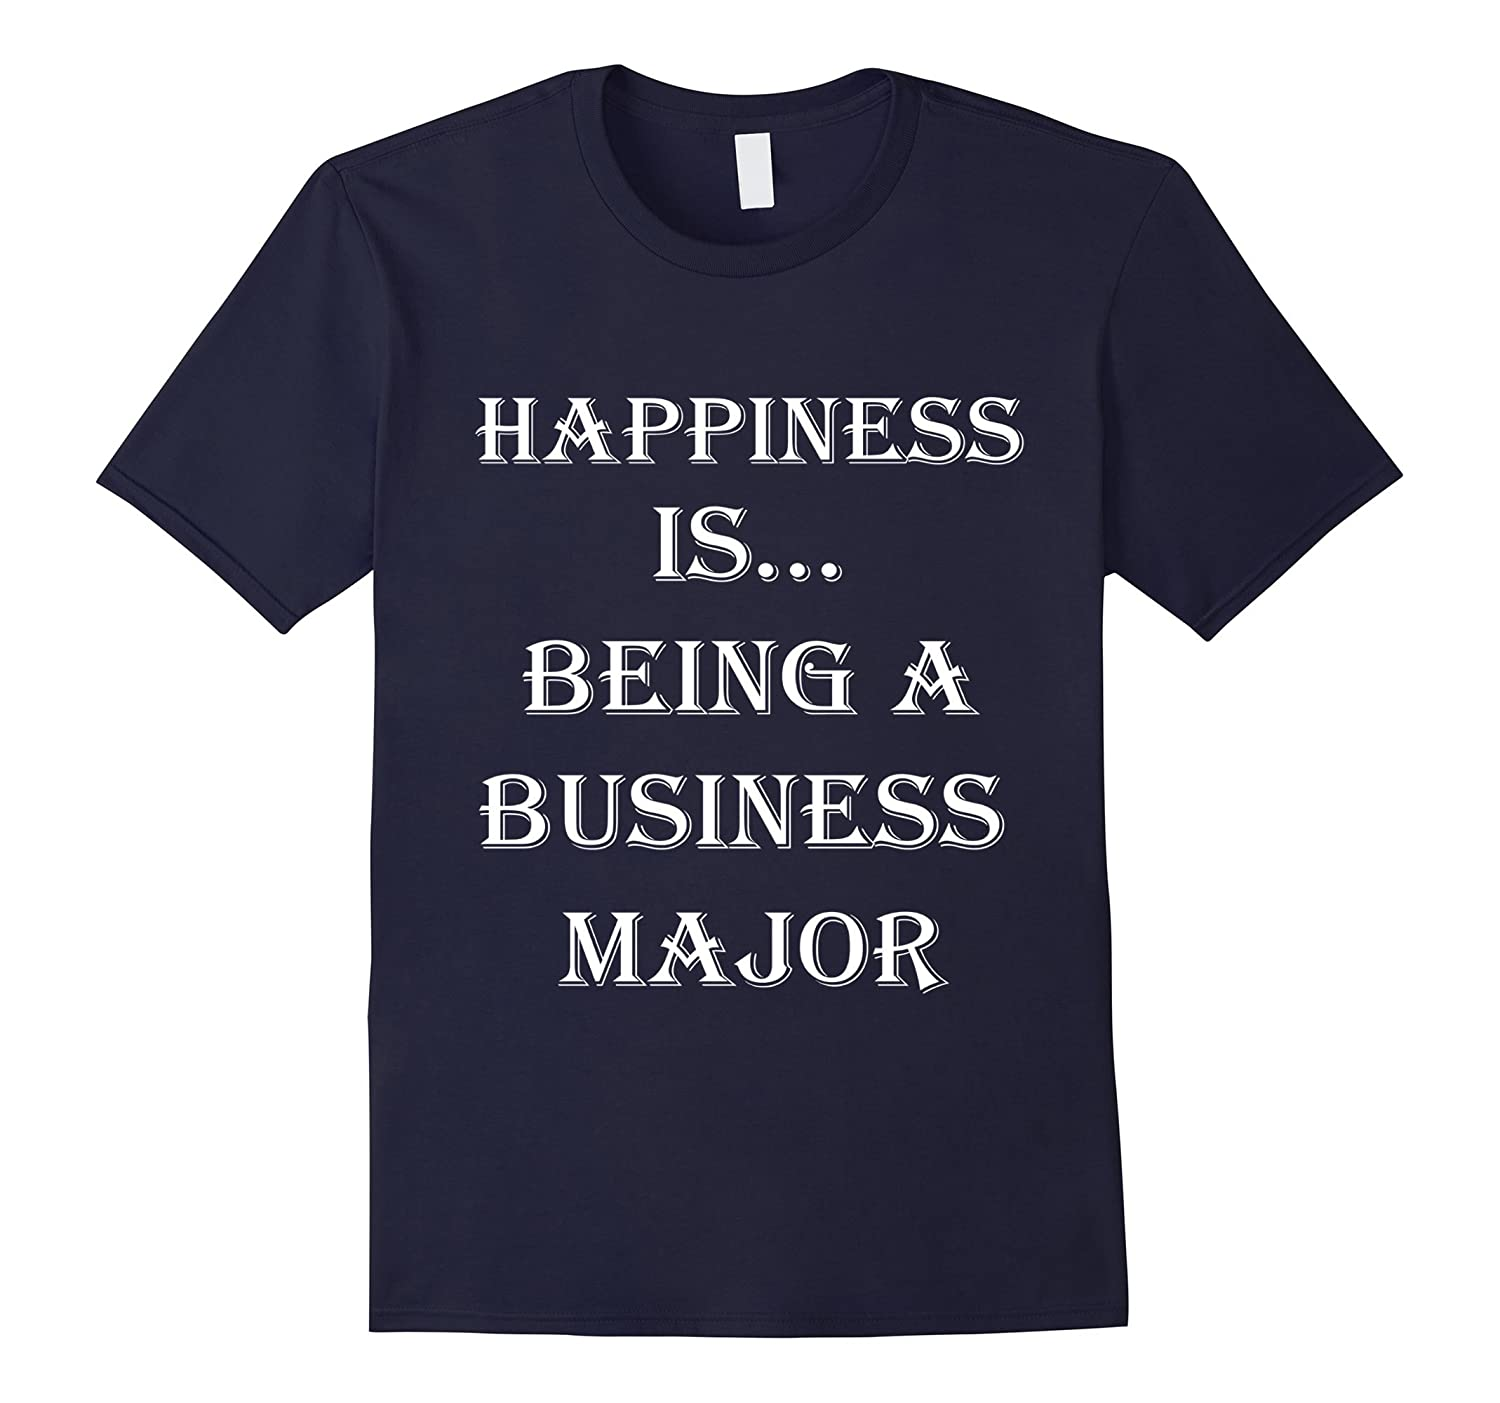 HAPPINESS IS BEING A BUSINESS MAJOR-FL